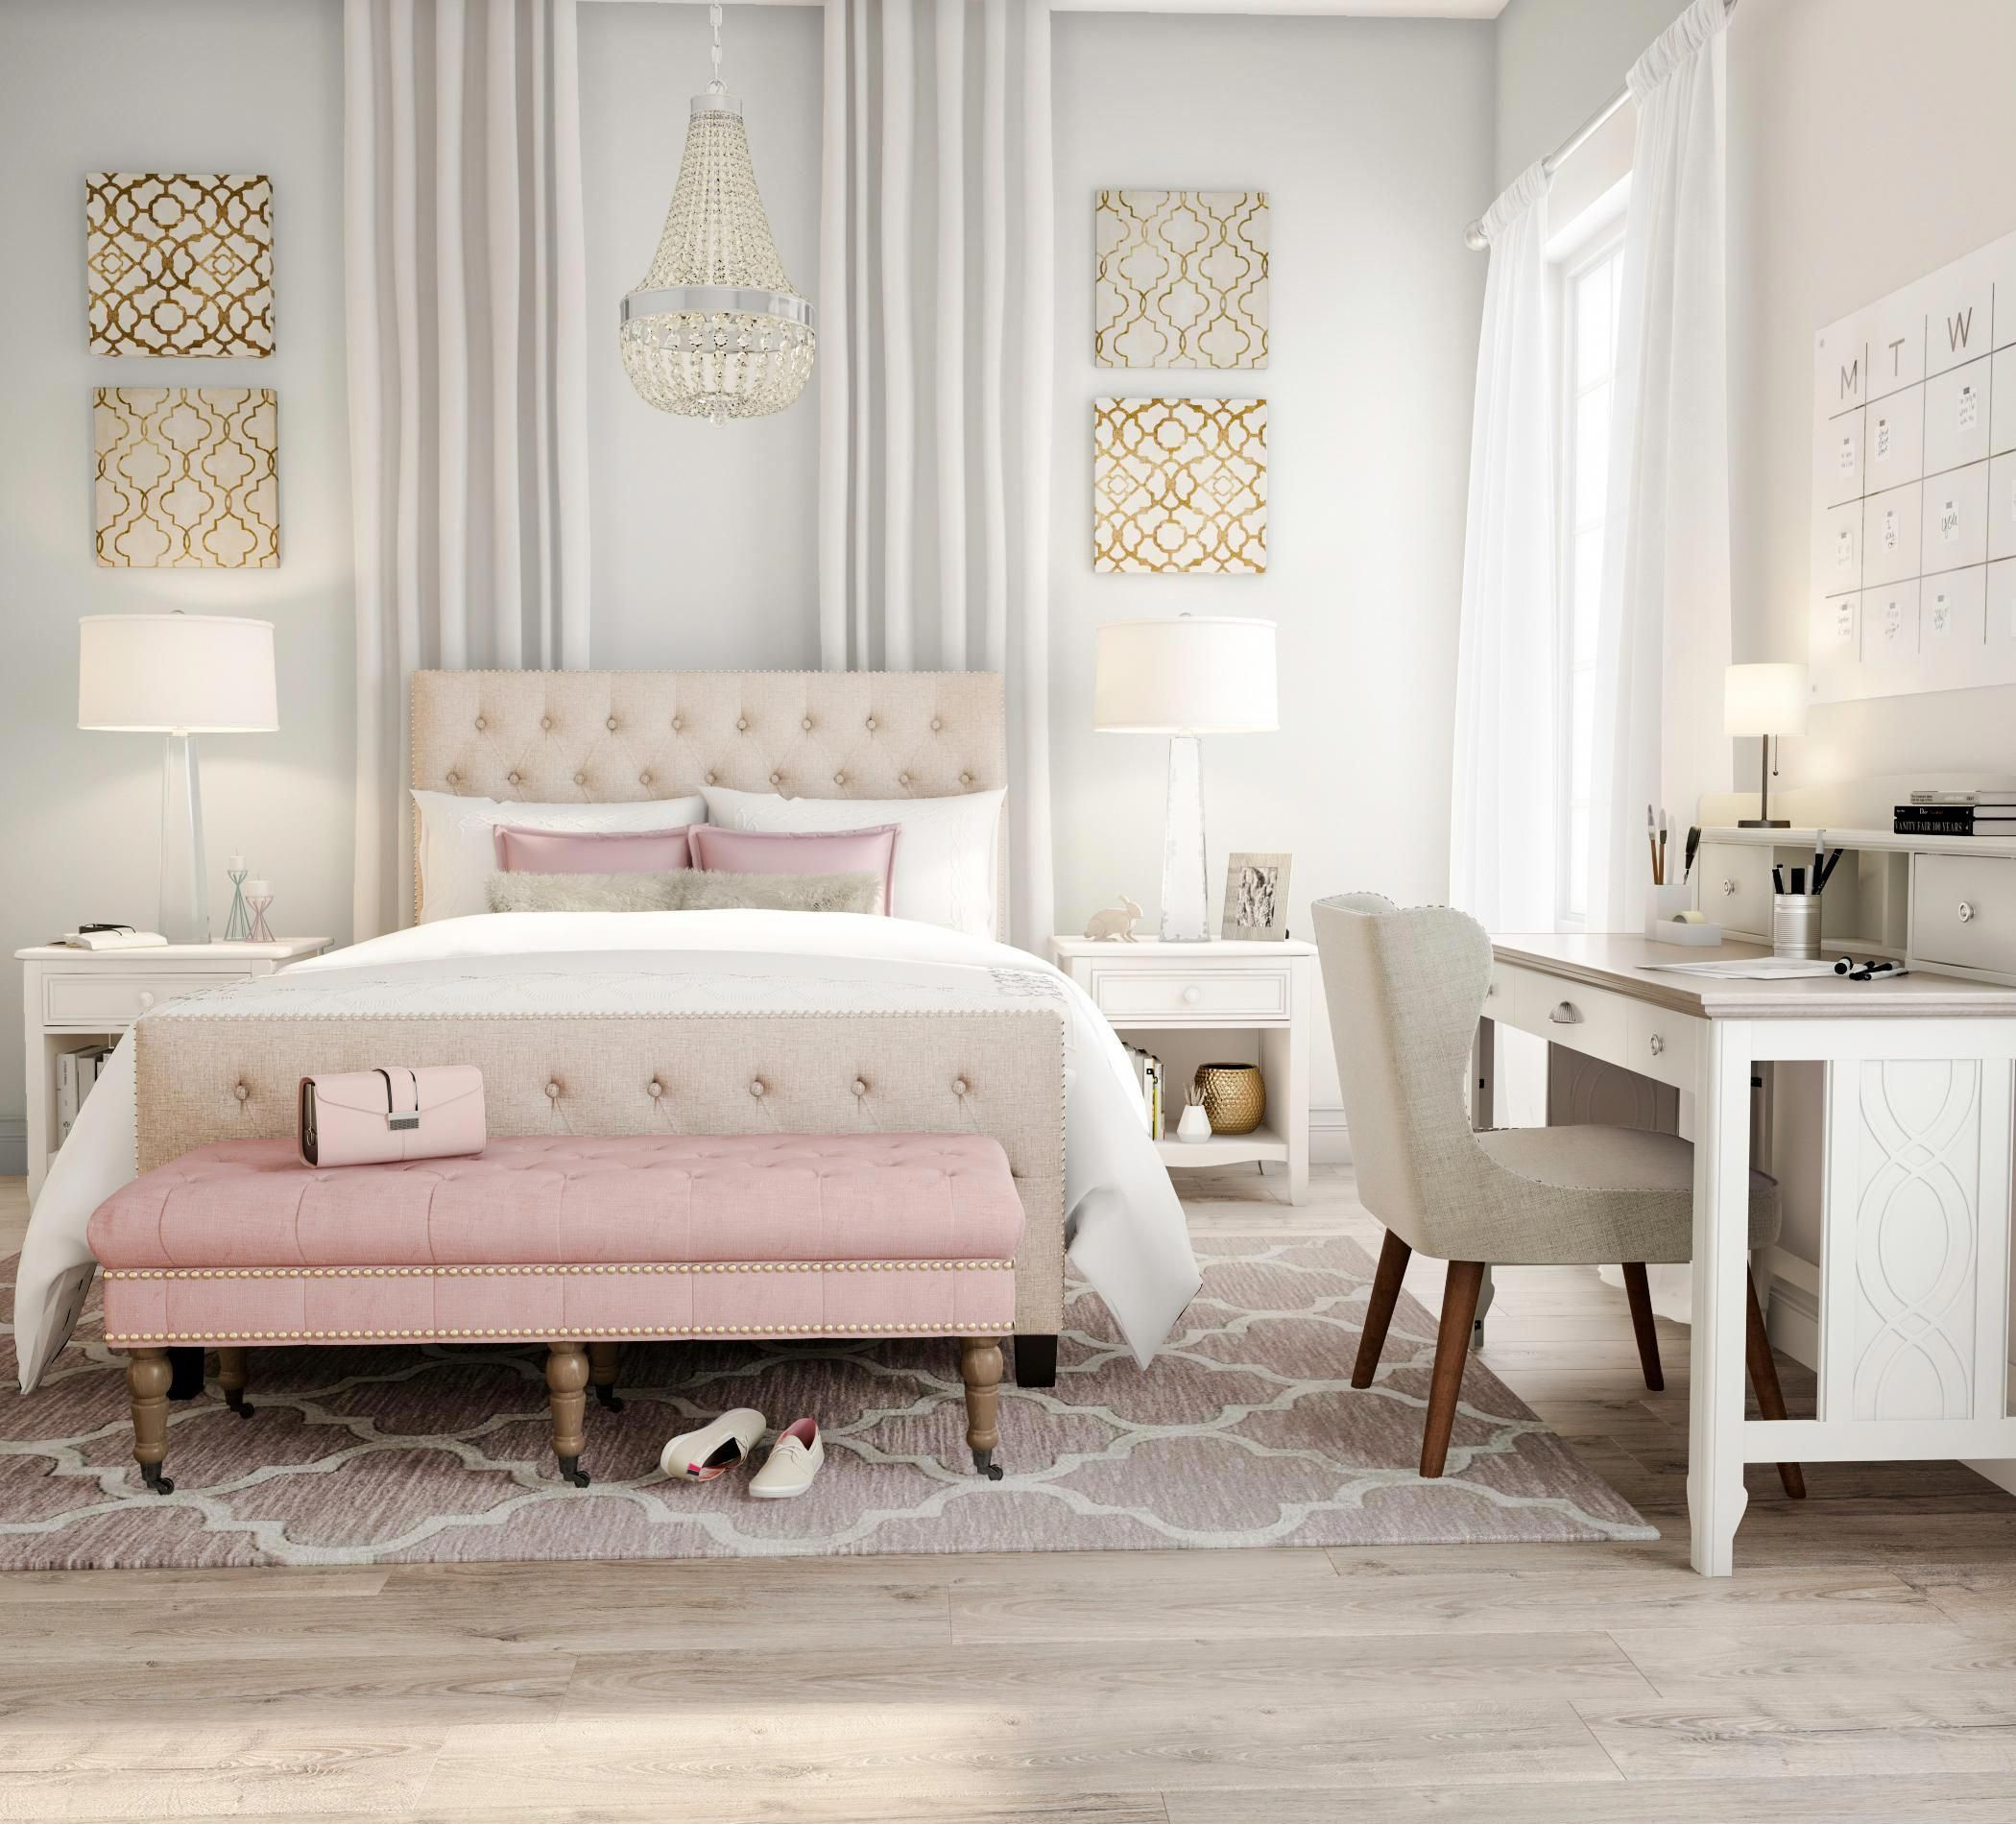 Excite Your Senses With Pink And Gold This Modern Bedroom Is Fun But Sophisticated With Seashell A Beige Walls Bedroom Pink Bedroom Decor Gold Bedroom Decor